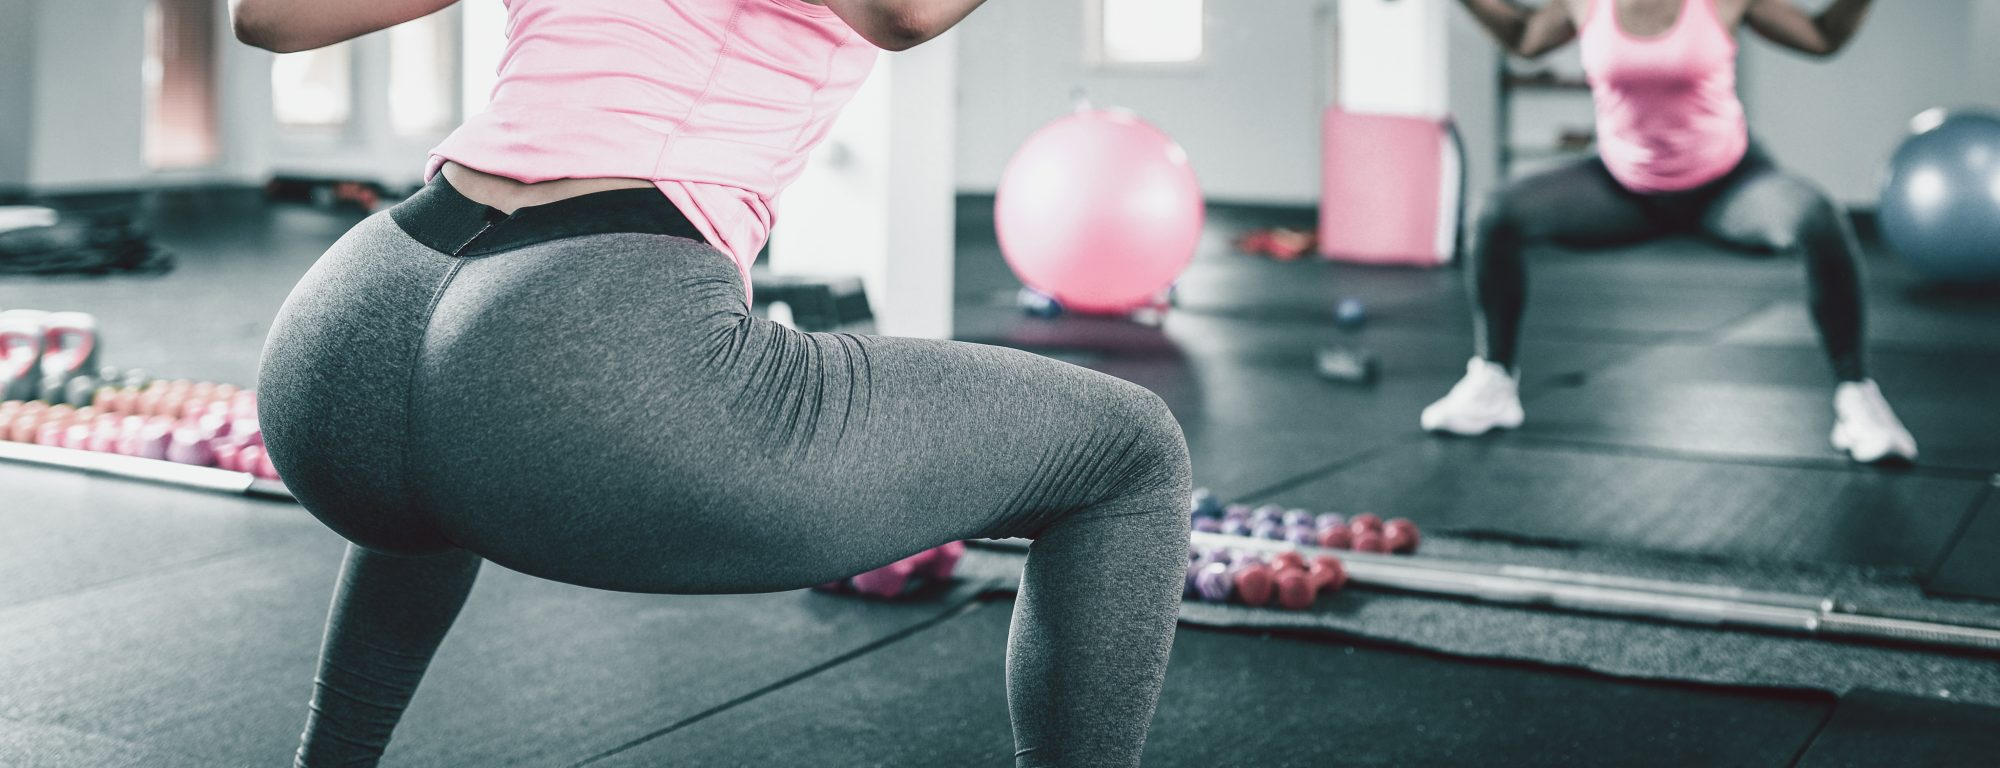 3 Squat Mistakes People Make at the Gym—And How to Fix Them